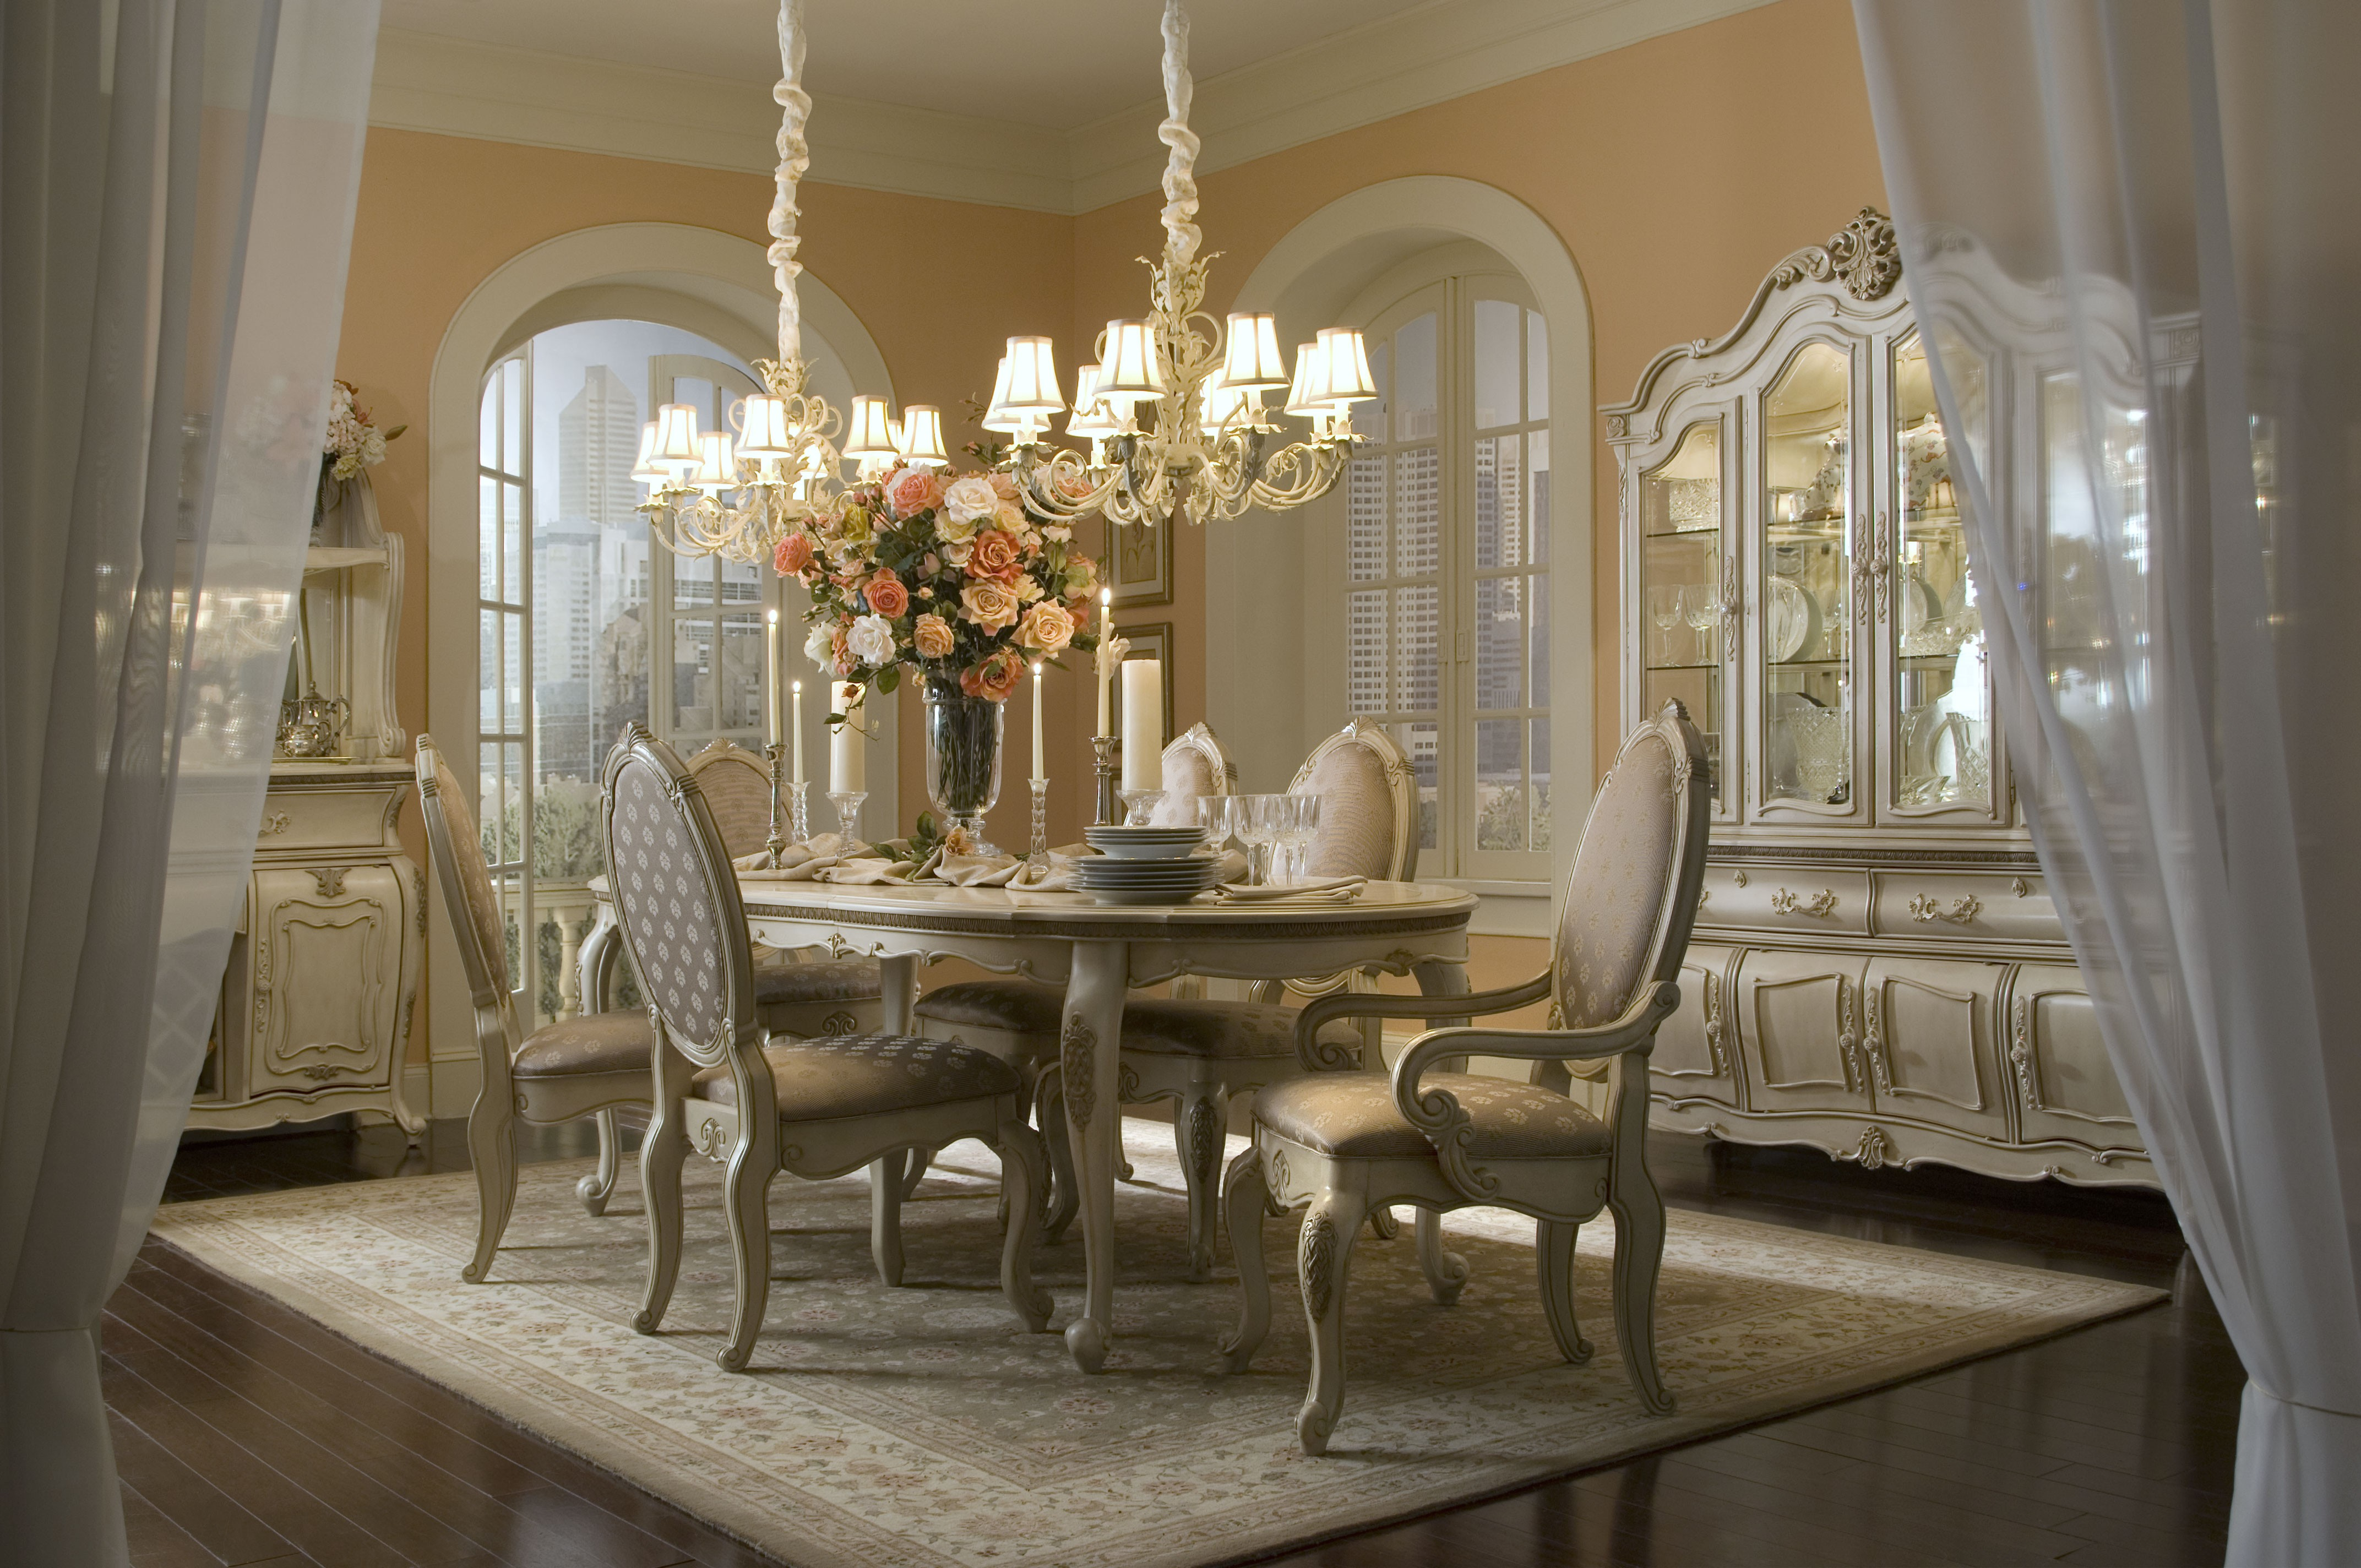 Traditional Antique White Dining Room With Luxury Hanging Lamp (Image 18 of 19)